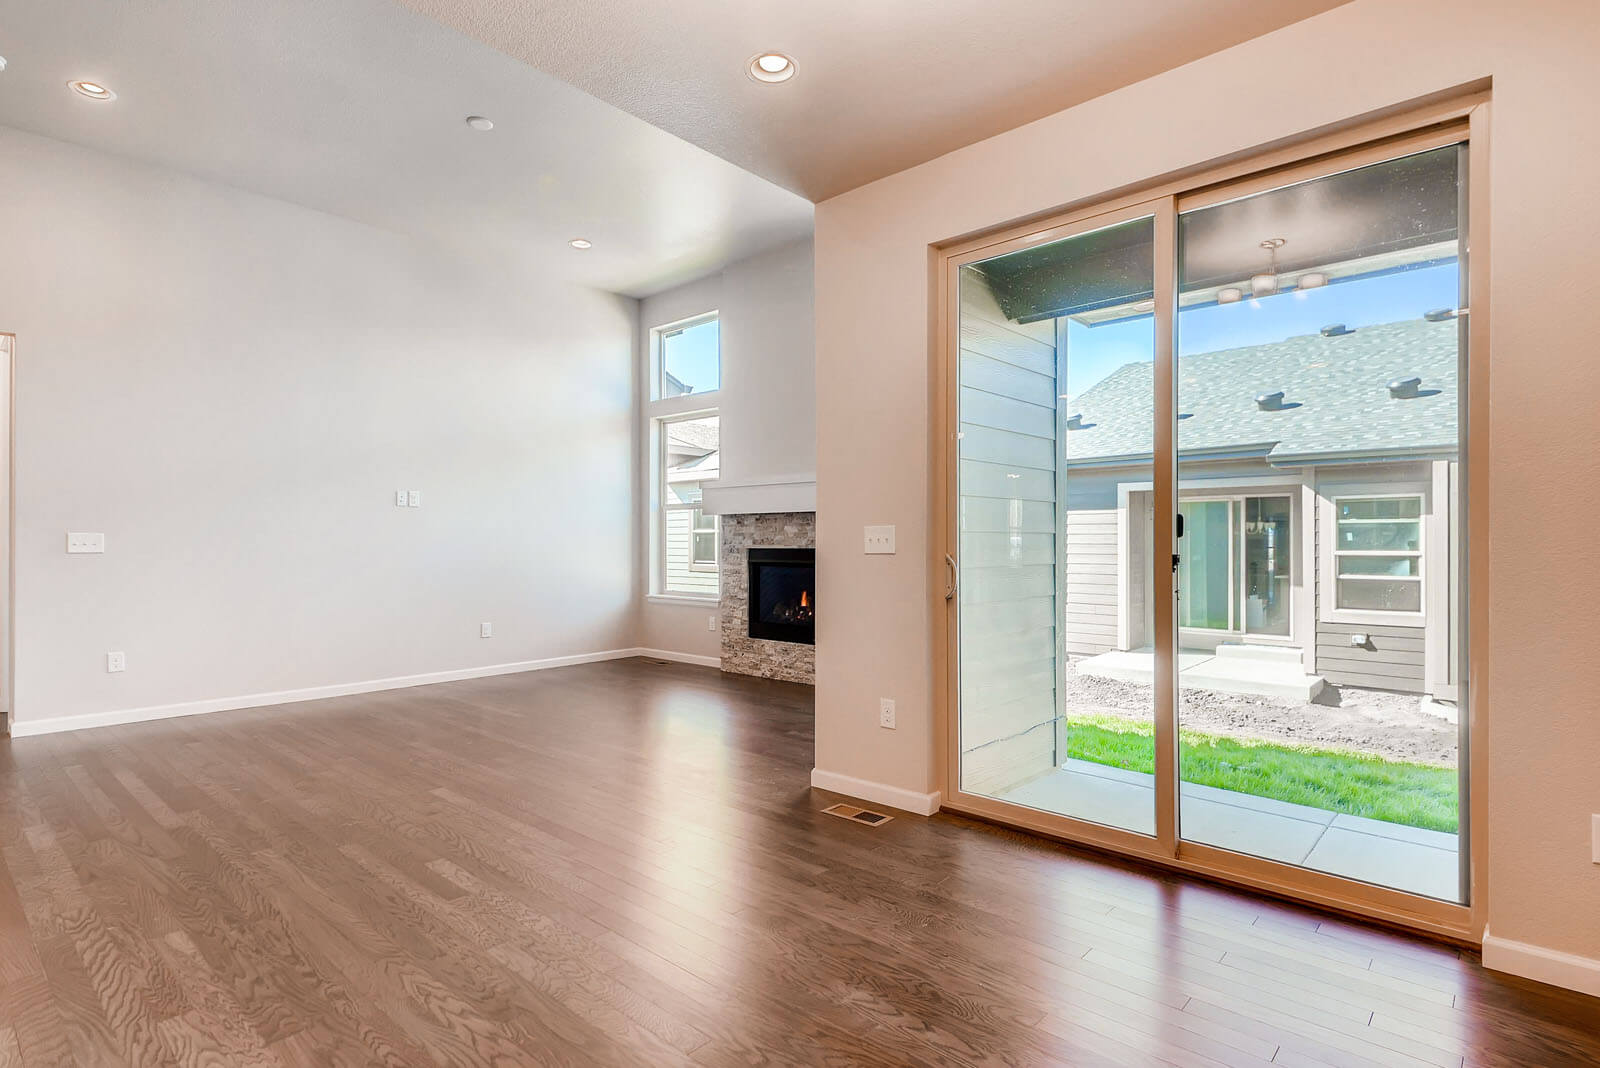 New Denver Single Family Home Quick Possession <b></b>Ponderosa in Lincoln Creek, located at 11890 Barrentine Loop, Parker, CO, 80138 Built By Cardel Homes Denver